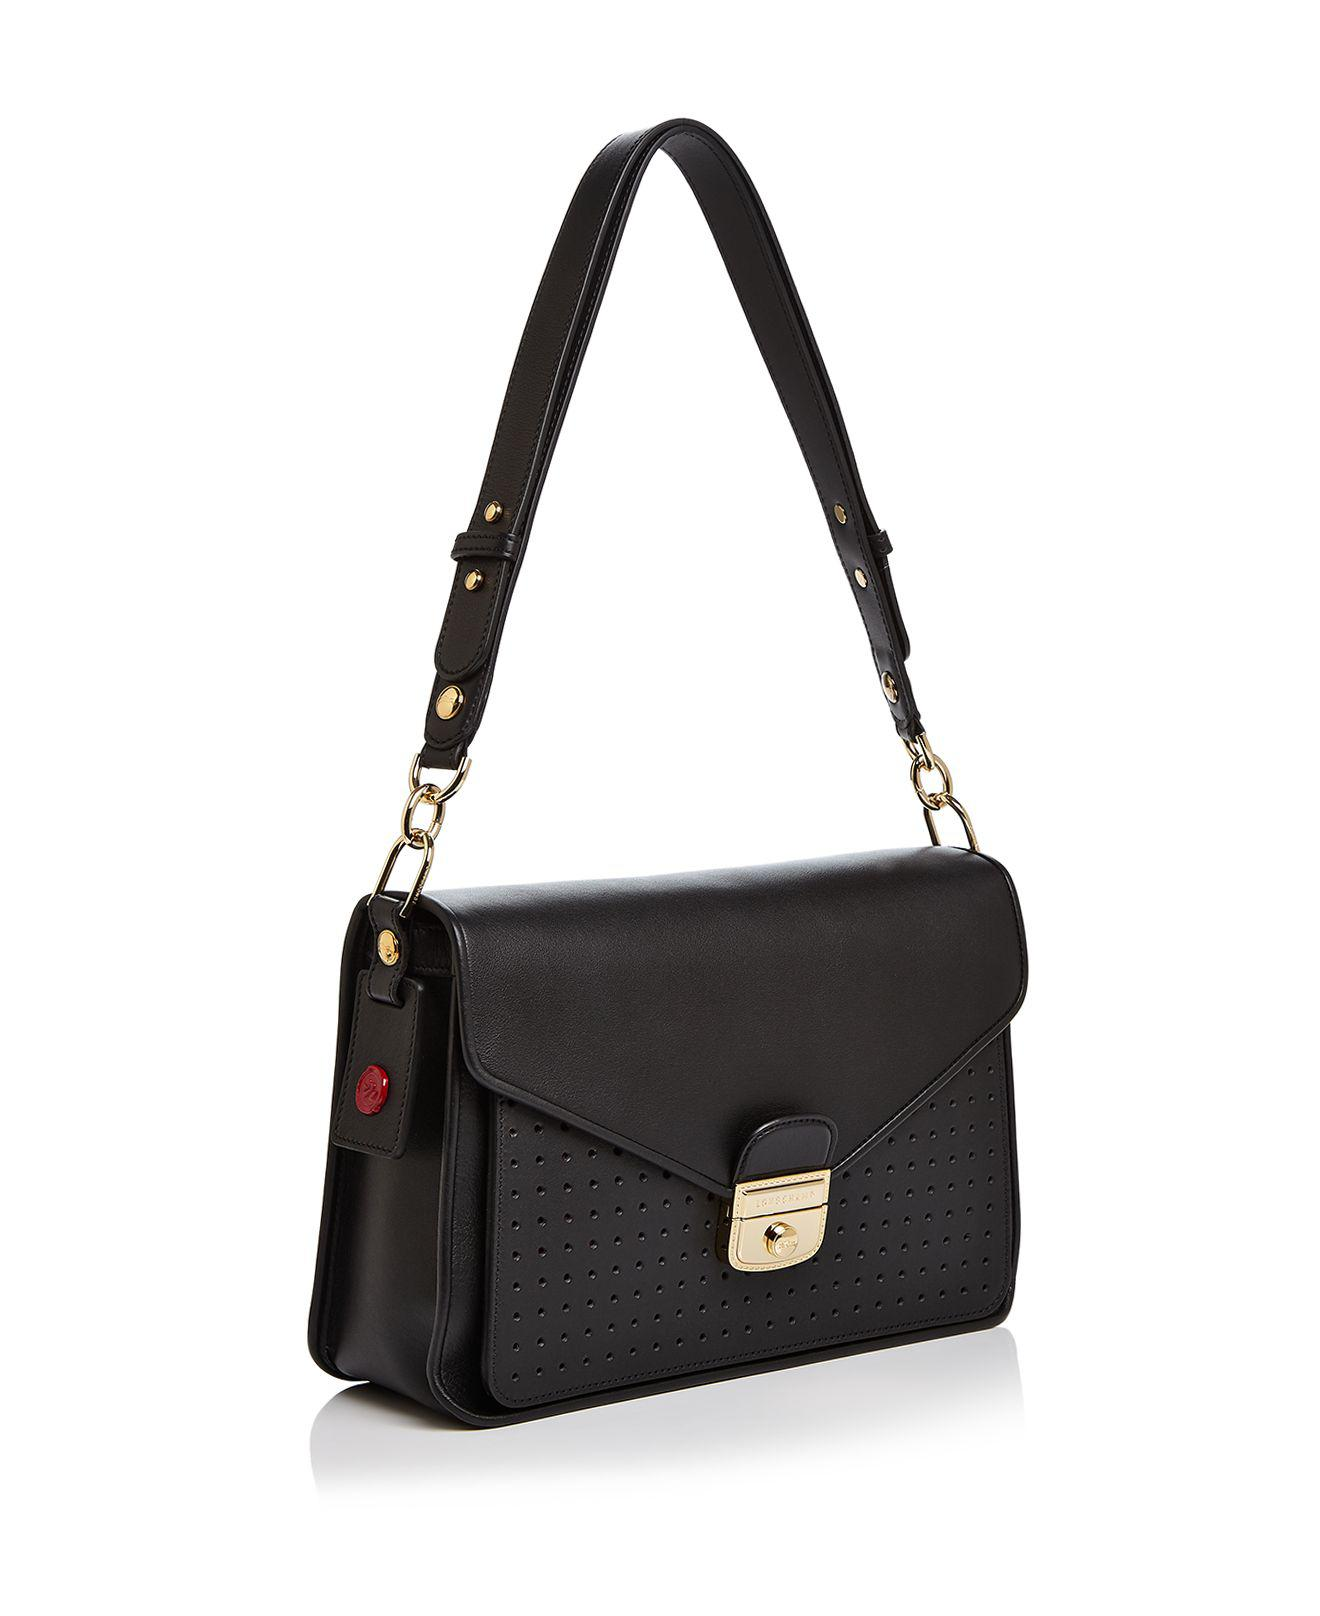 Lyst - Longchamp Mademoiselle Leather Shoulder Bag in Black b069f6f80b